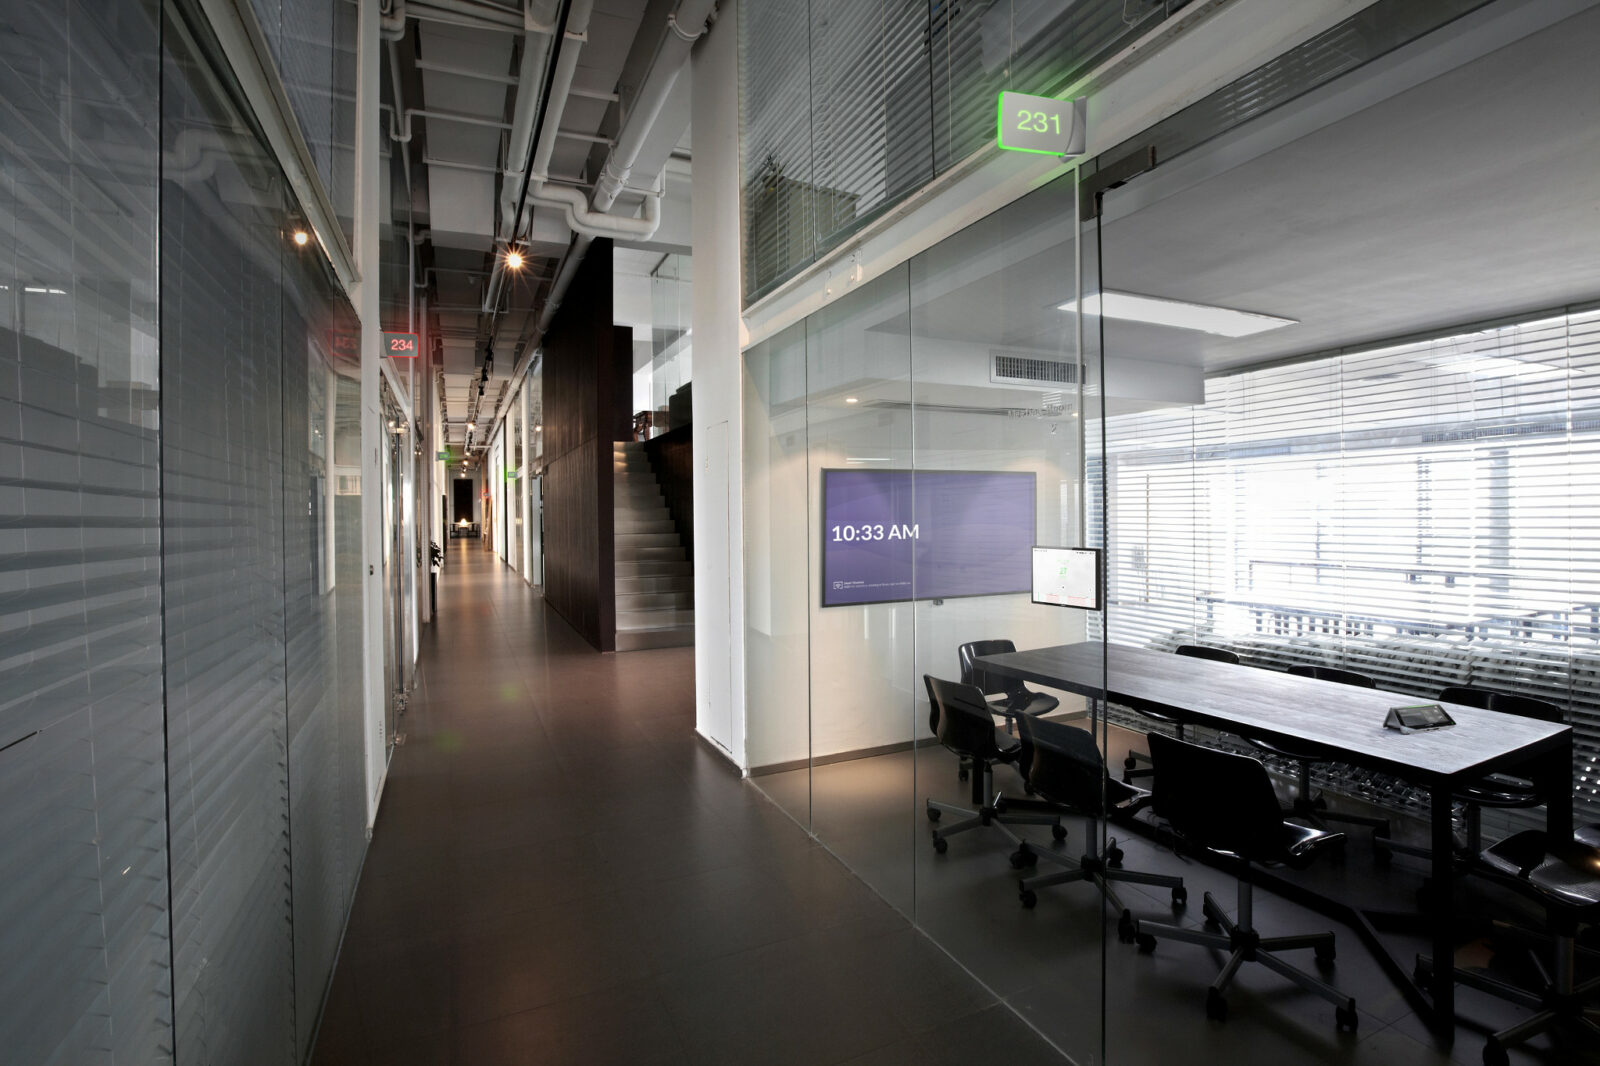 A sleek office interior with digital room scheduling system